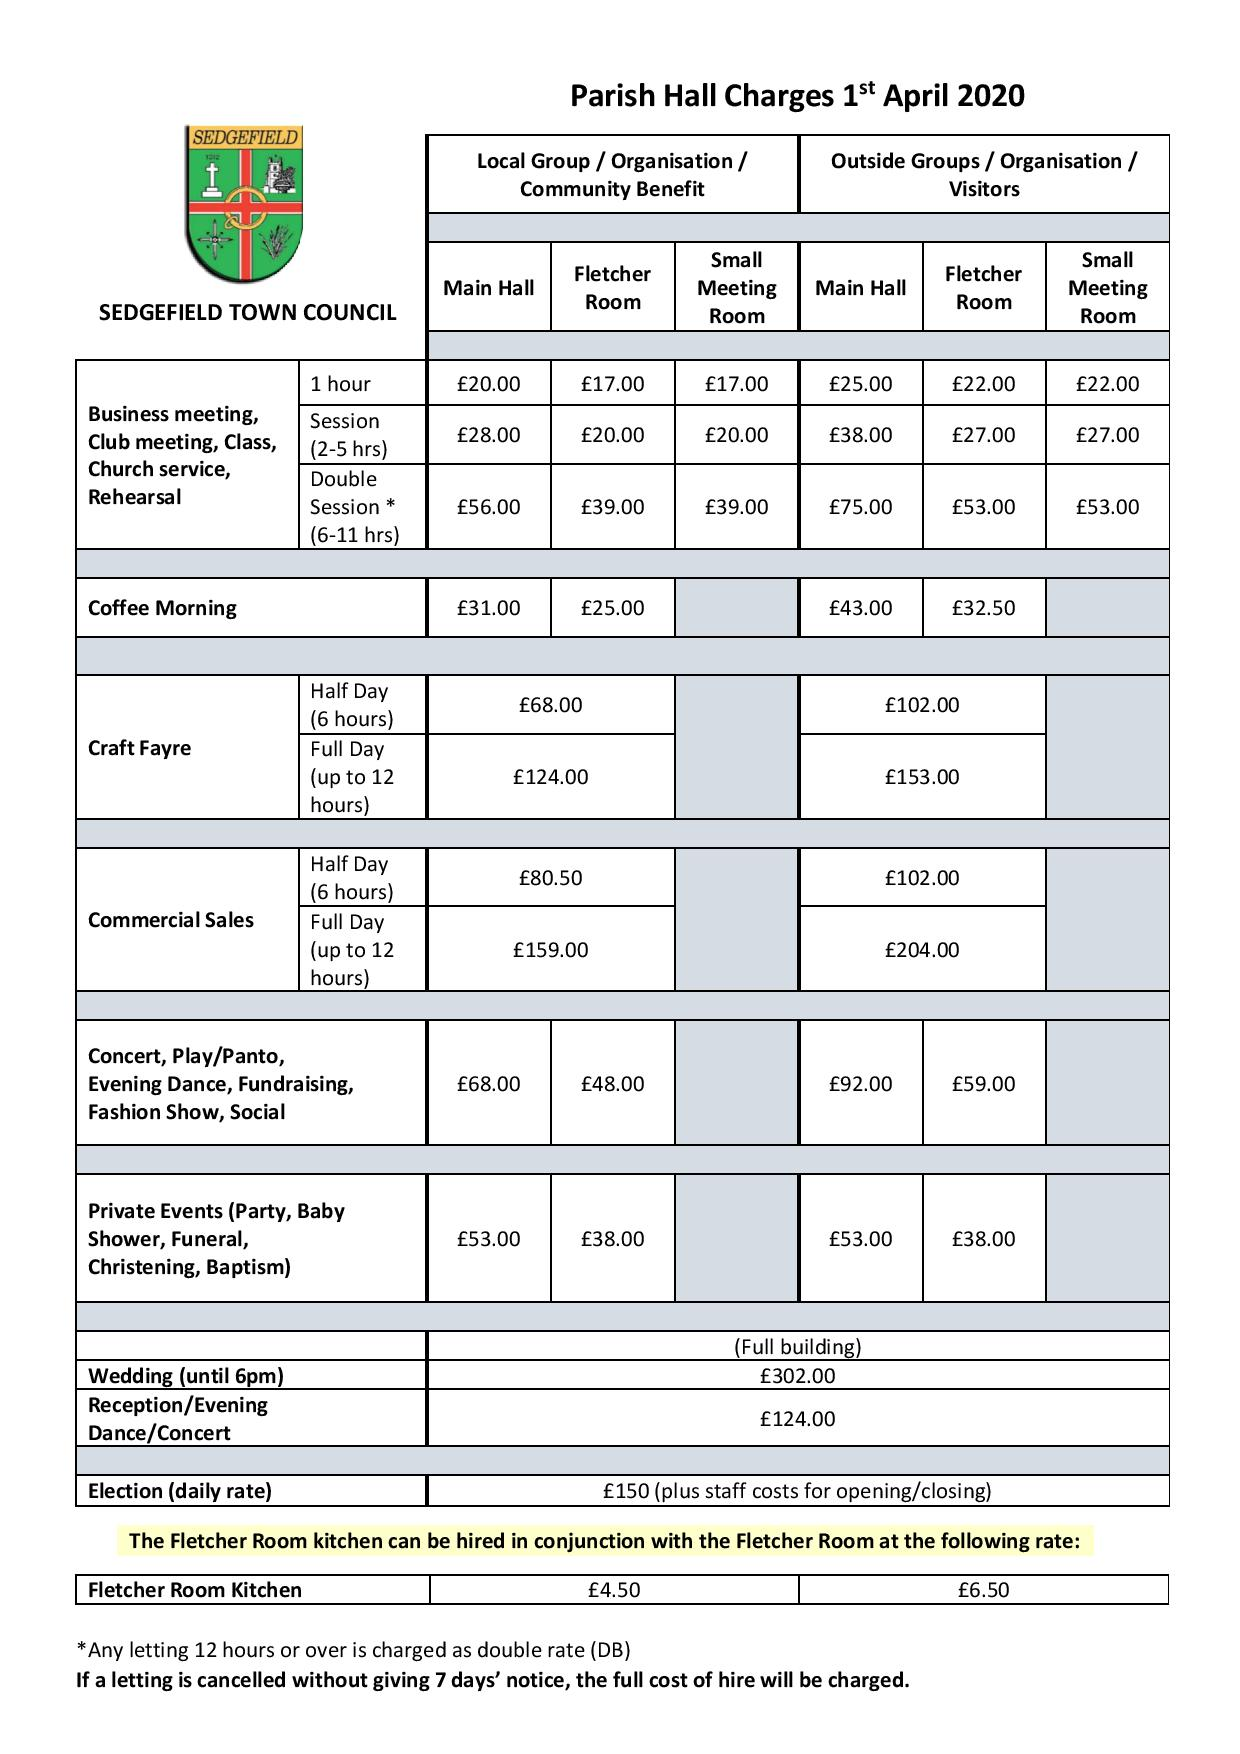 Parish Hall Fees wef 1 4 2020